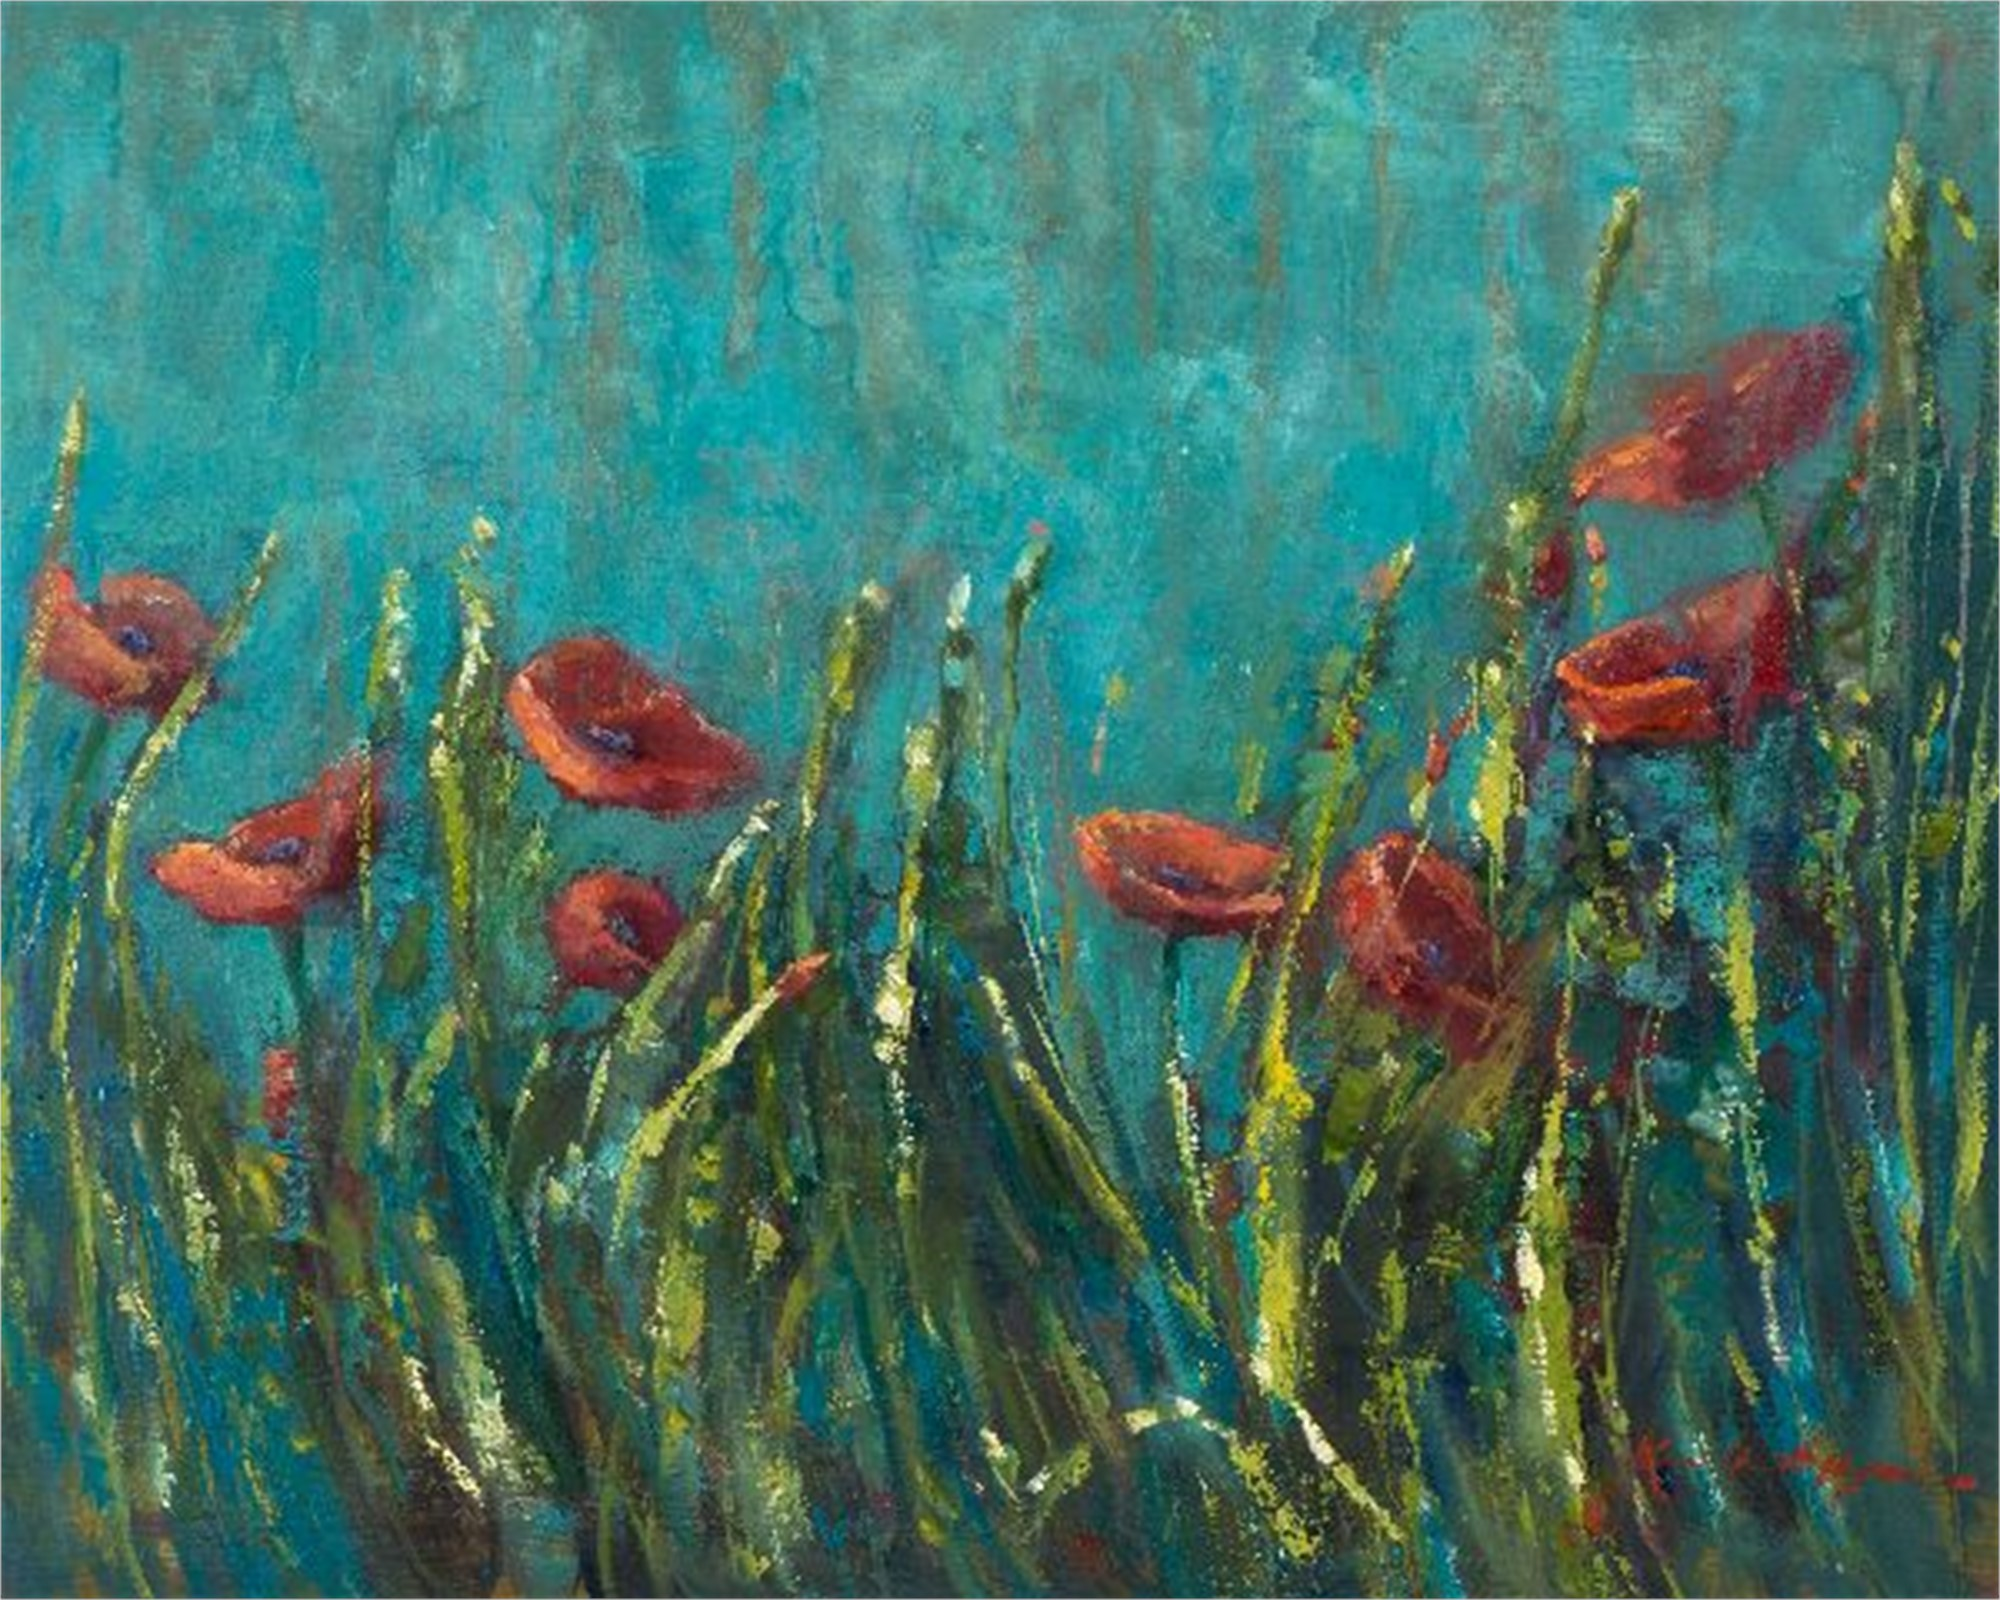 Italian Poppy Field by Karen Hewitt Hagan